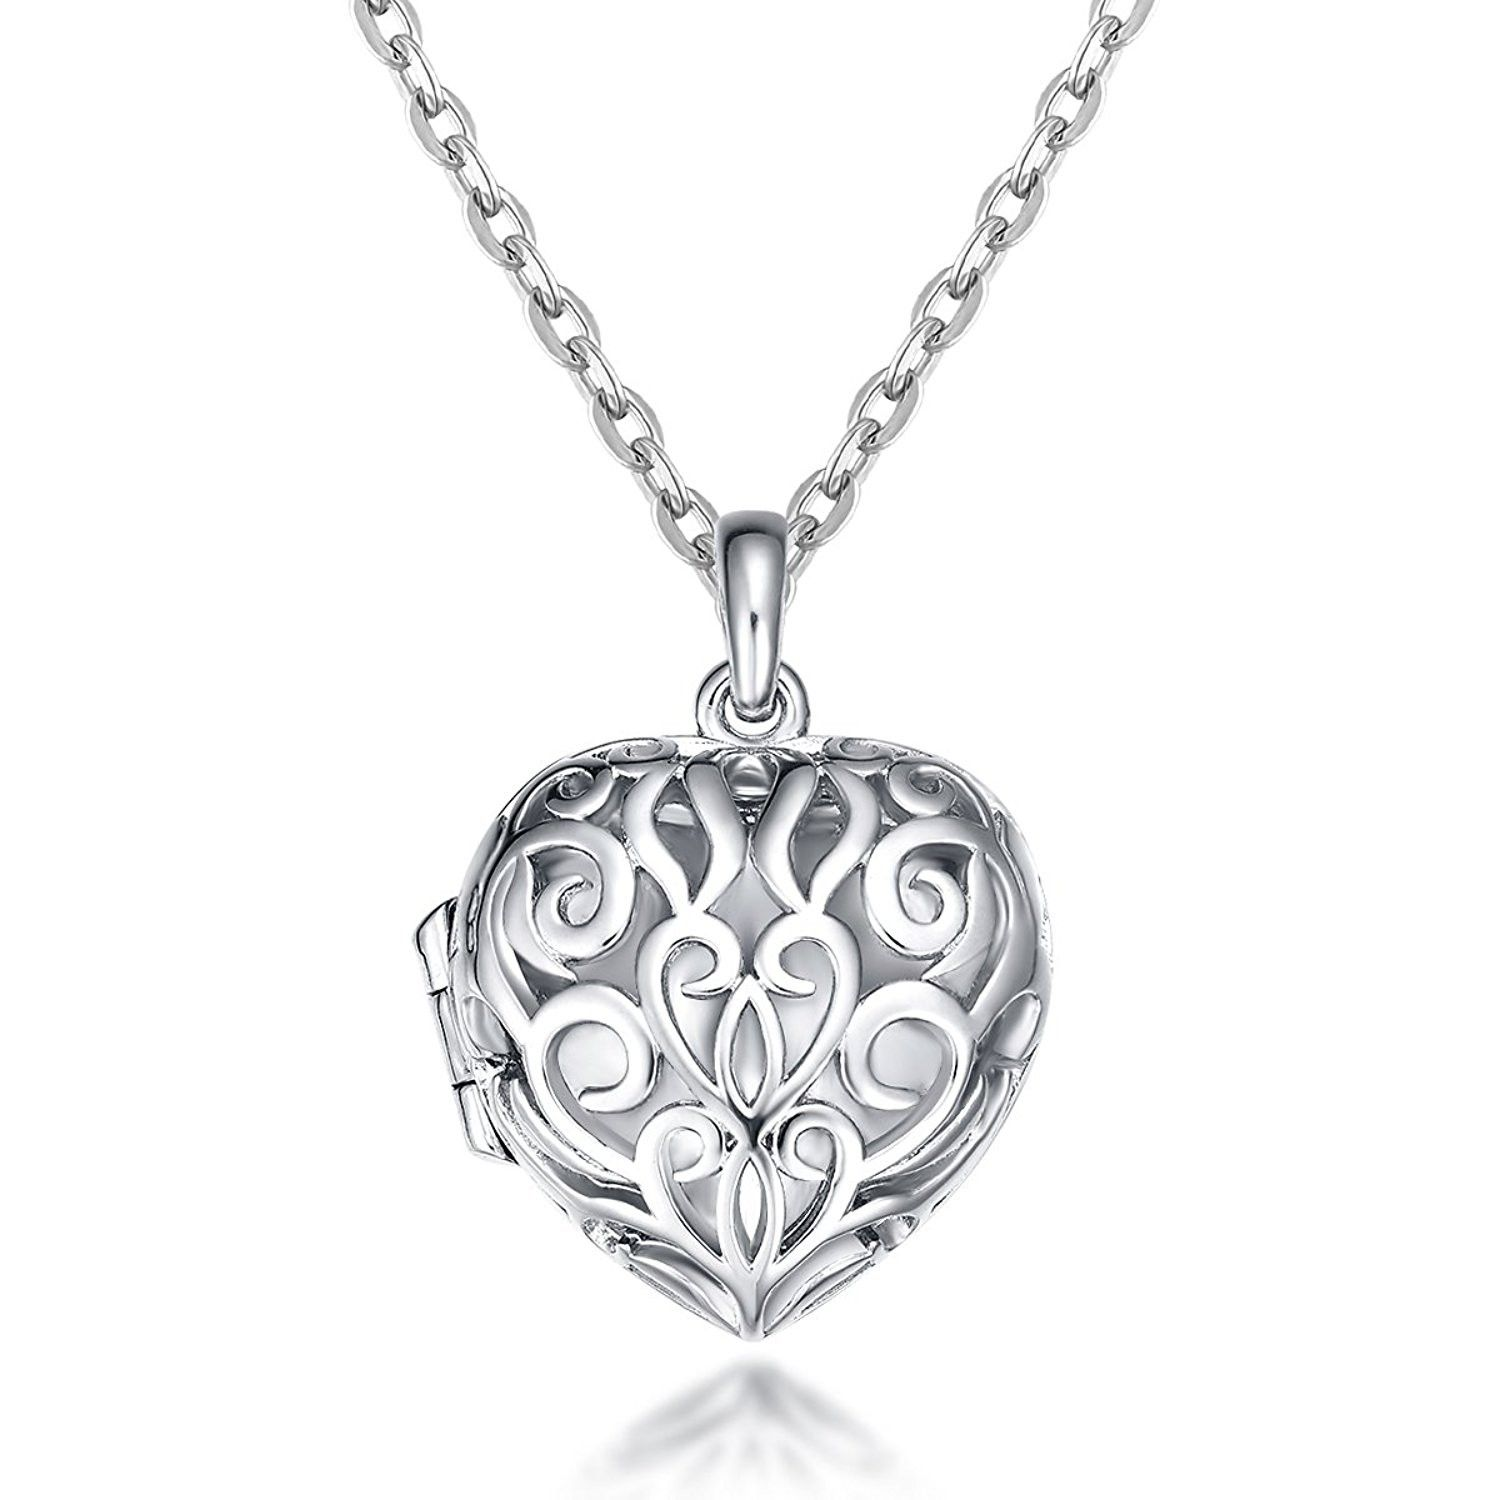 Ct gold plated locket neclace heart infinity love pendant necklace